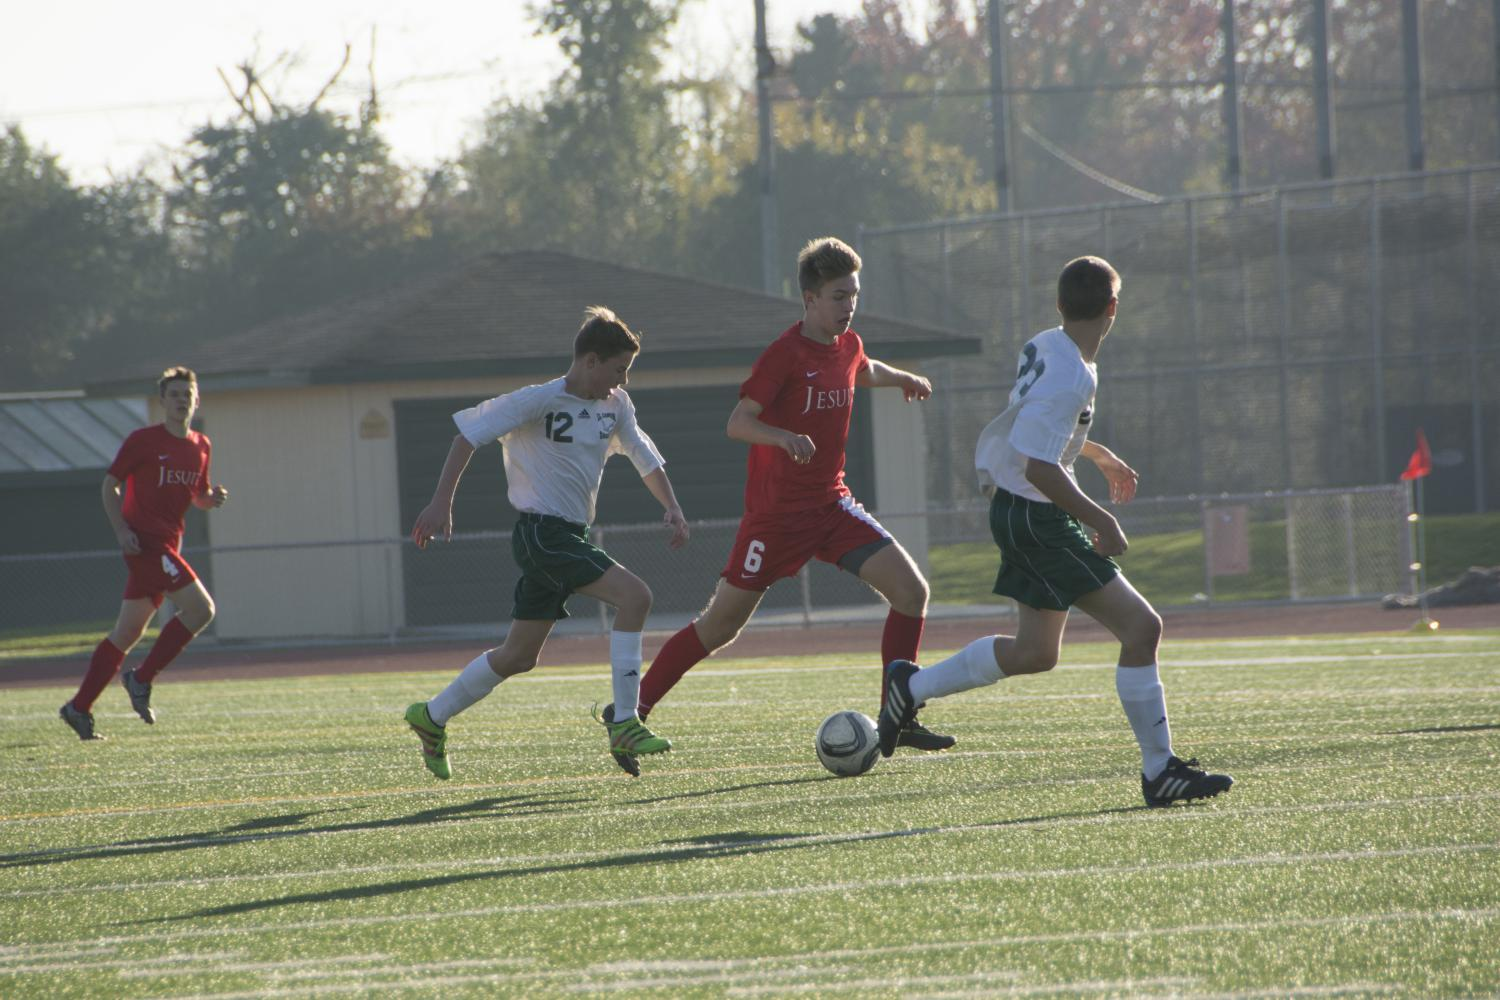 JV Gold Soccer: a season in review